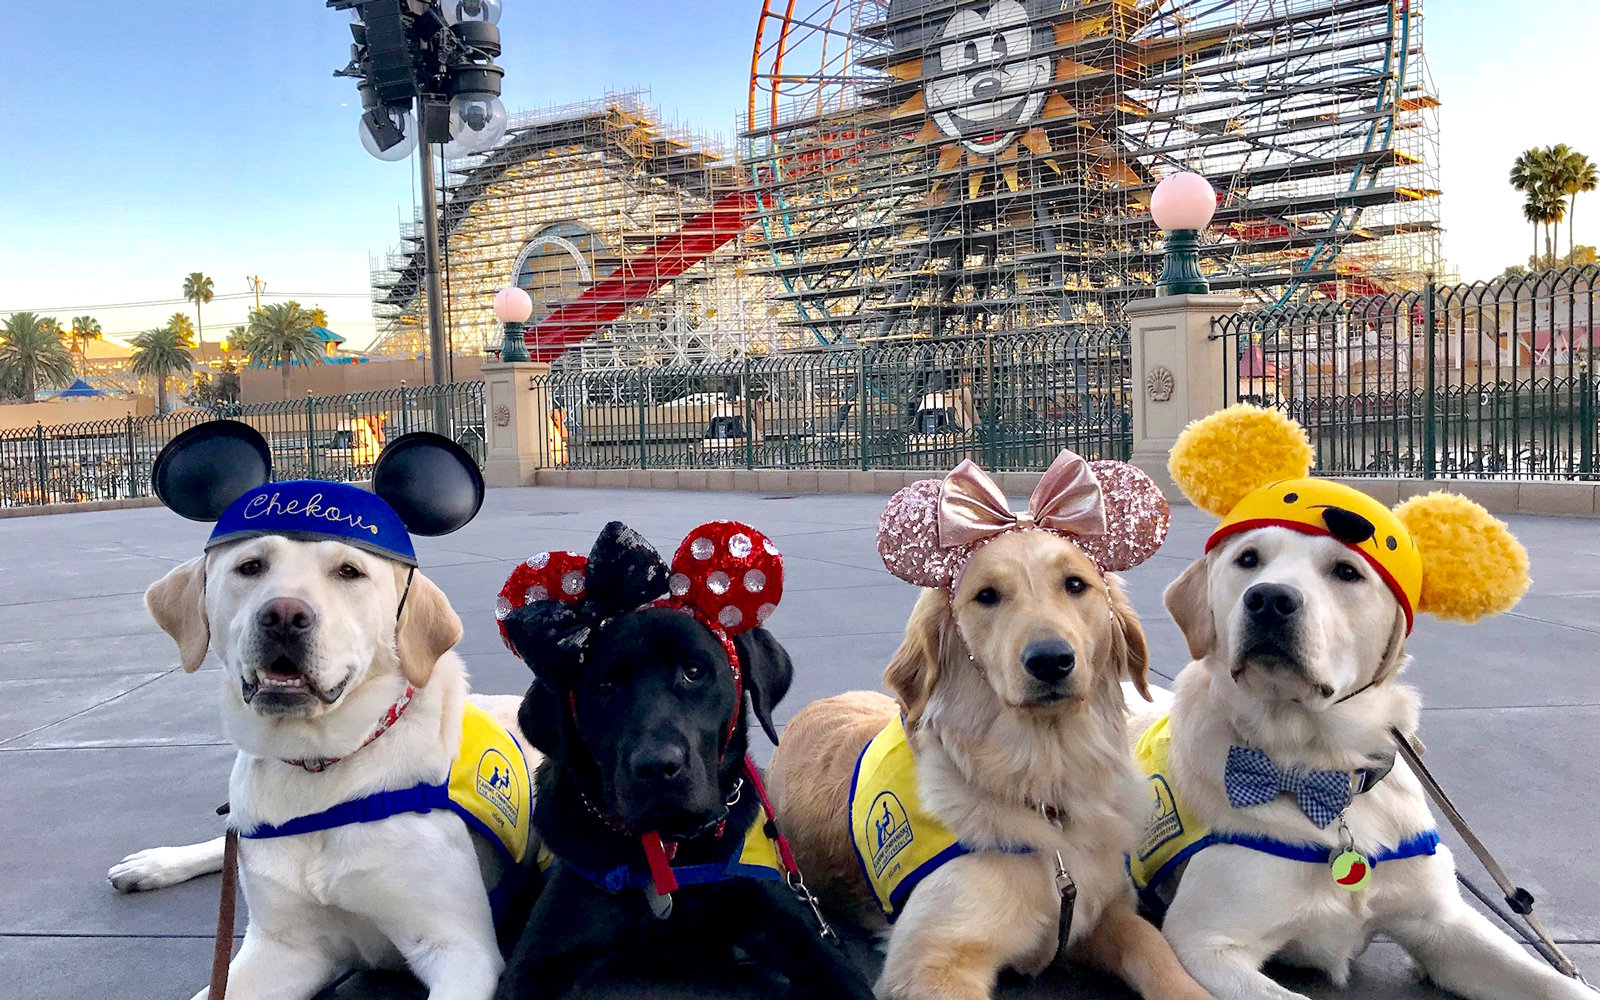 These Service Dogs Spent a Day at Disneyland and the Photos Are Absolutely Magical